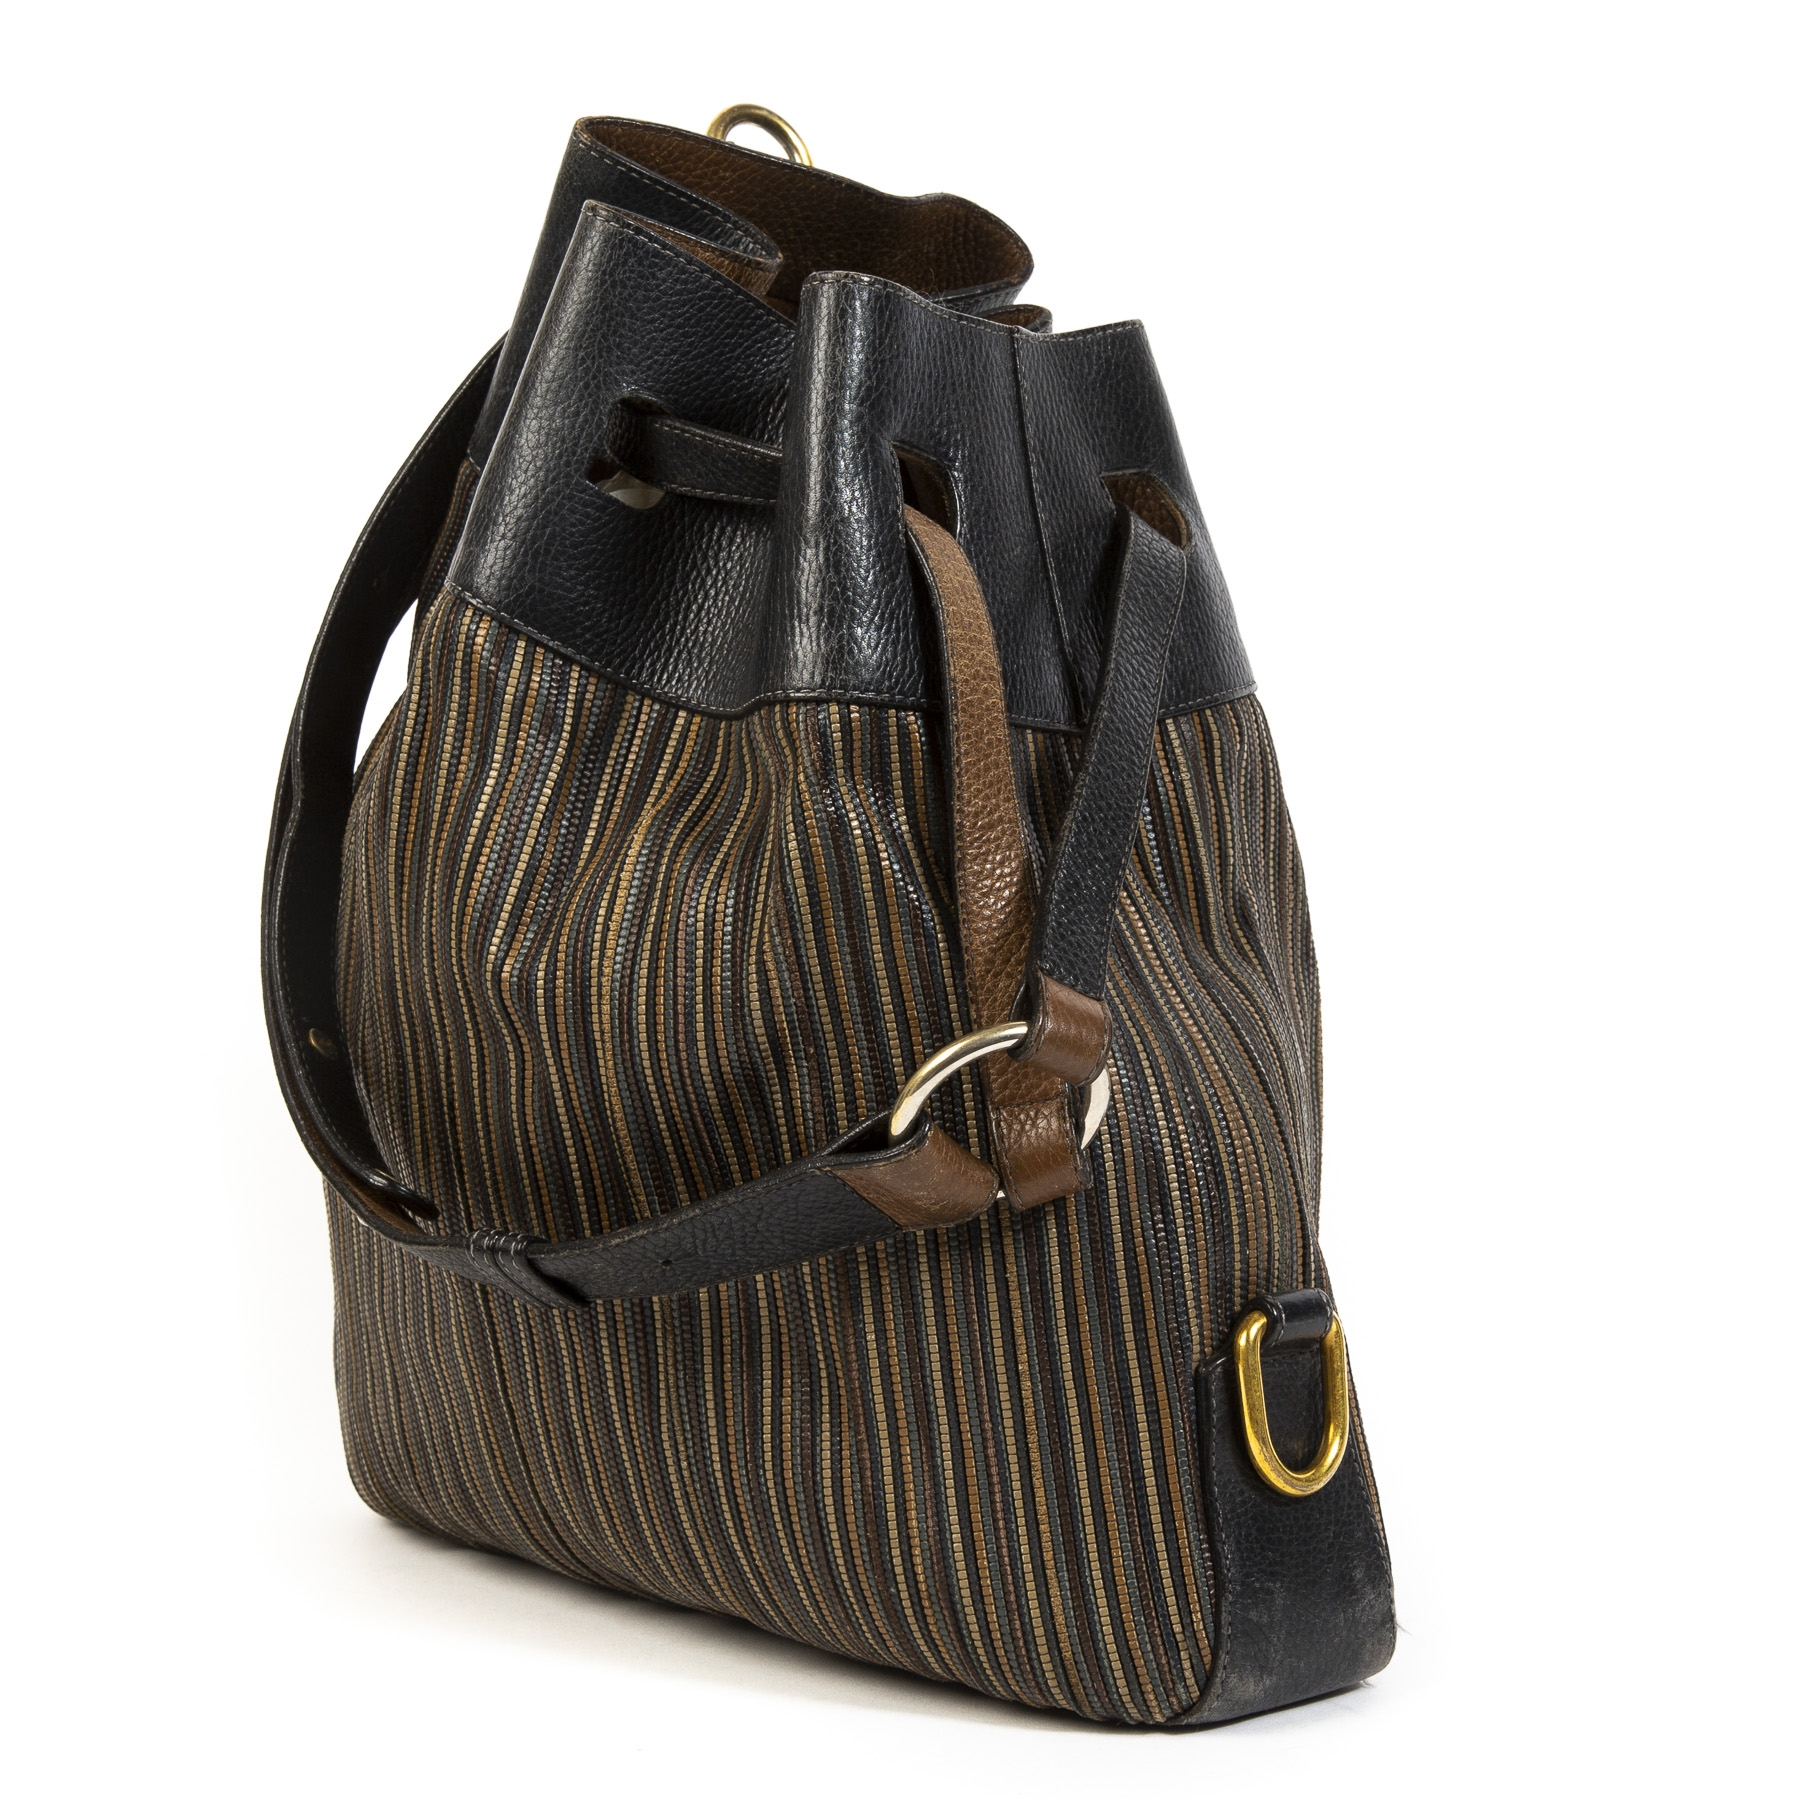 0a8b8e2f57327d Buy authentic secondhand Delvaux bags at the right price at LabelLOV  vintage webshop. Safe and secure online shopping.